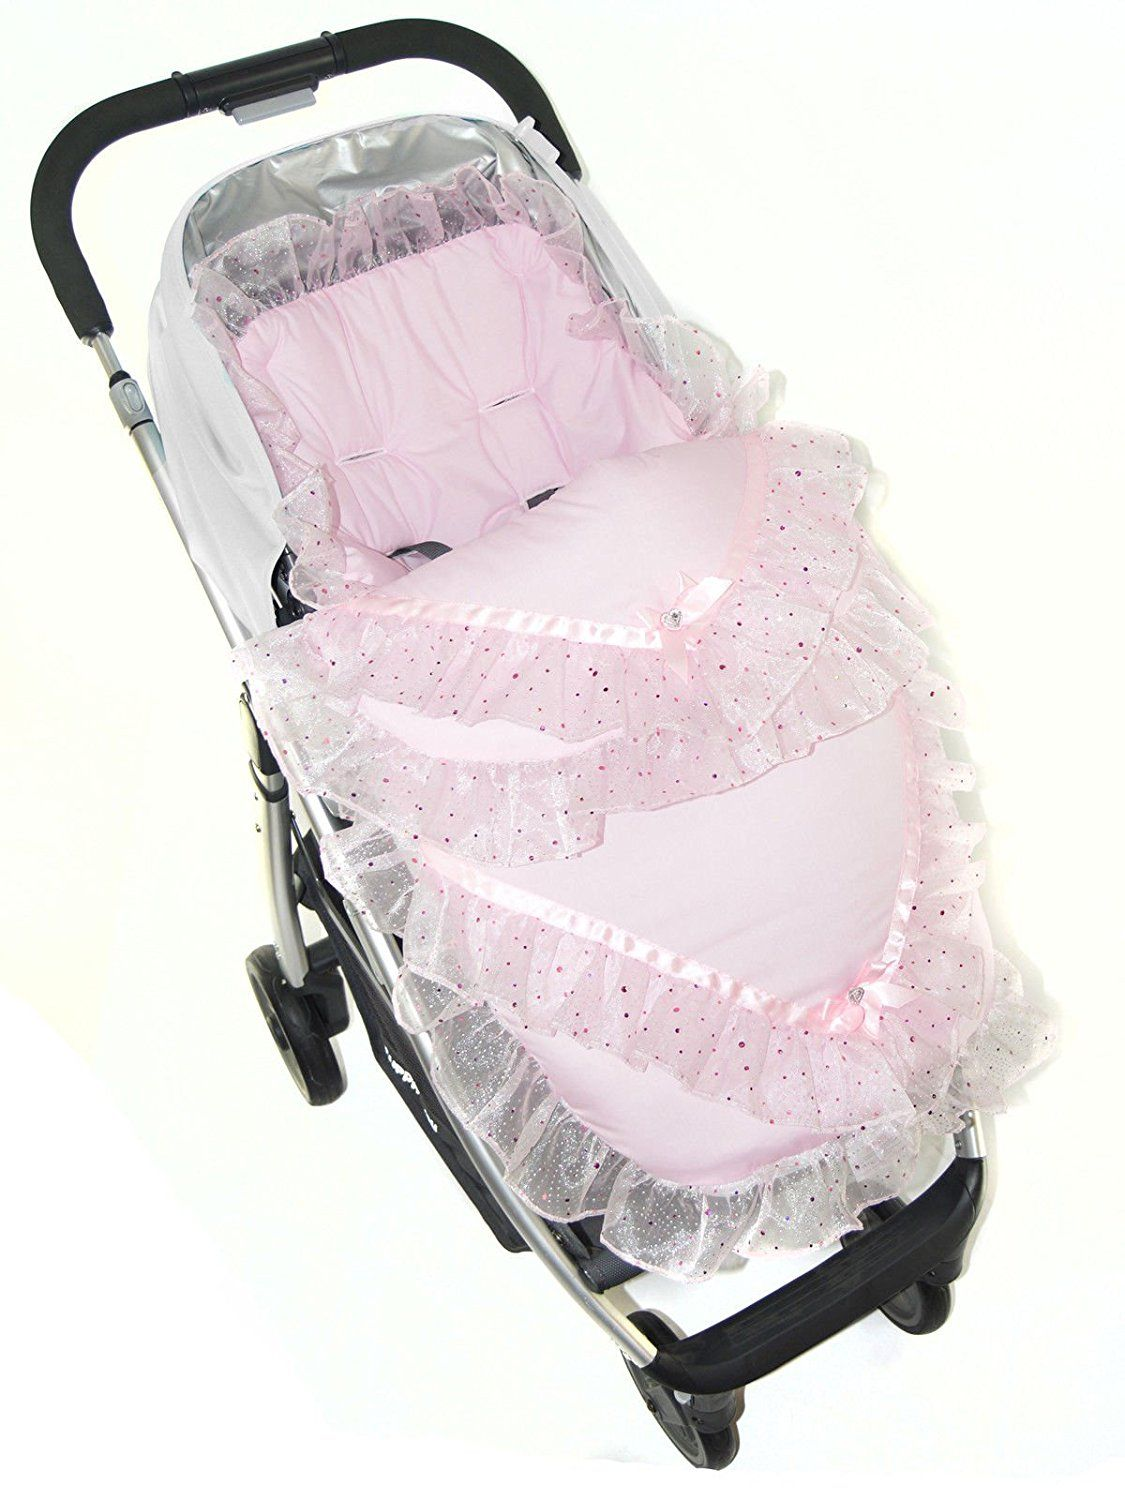 Broderie Anglaise Footmuff/Cosy Toes Fit Buggy Pushchair